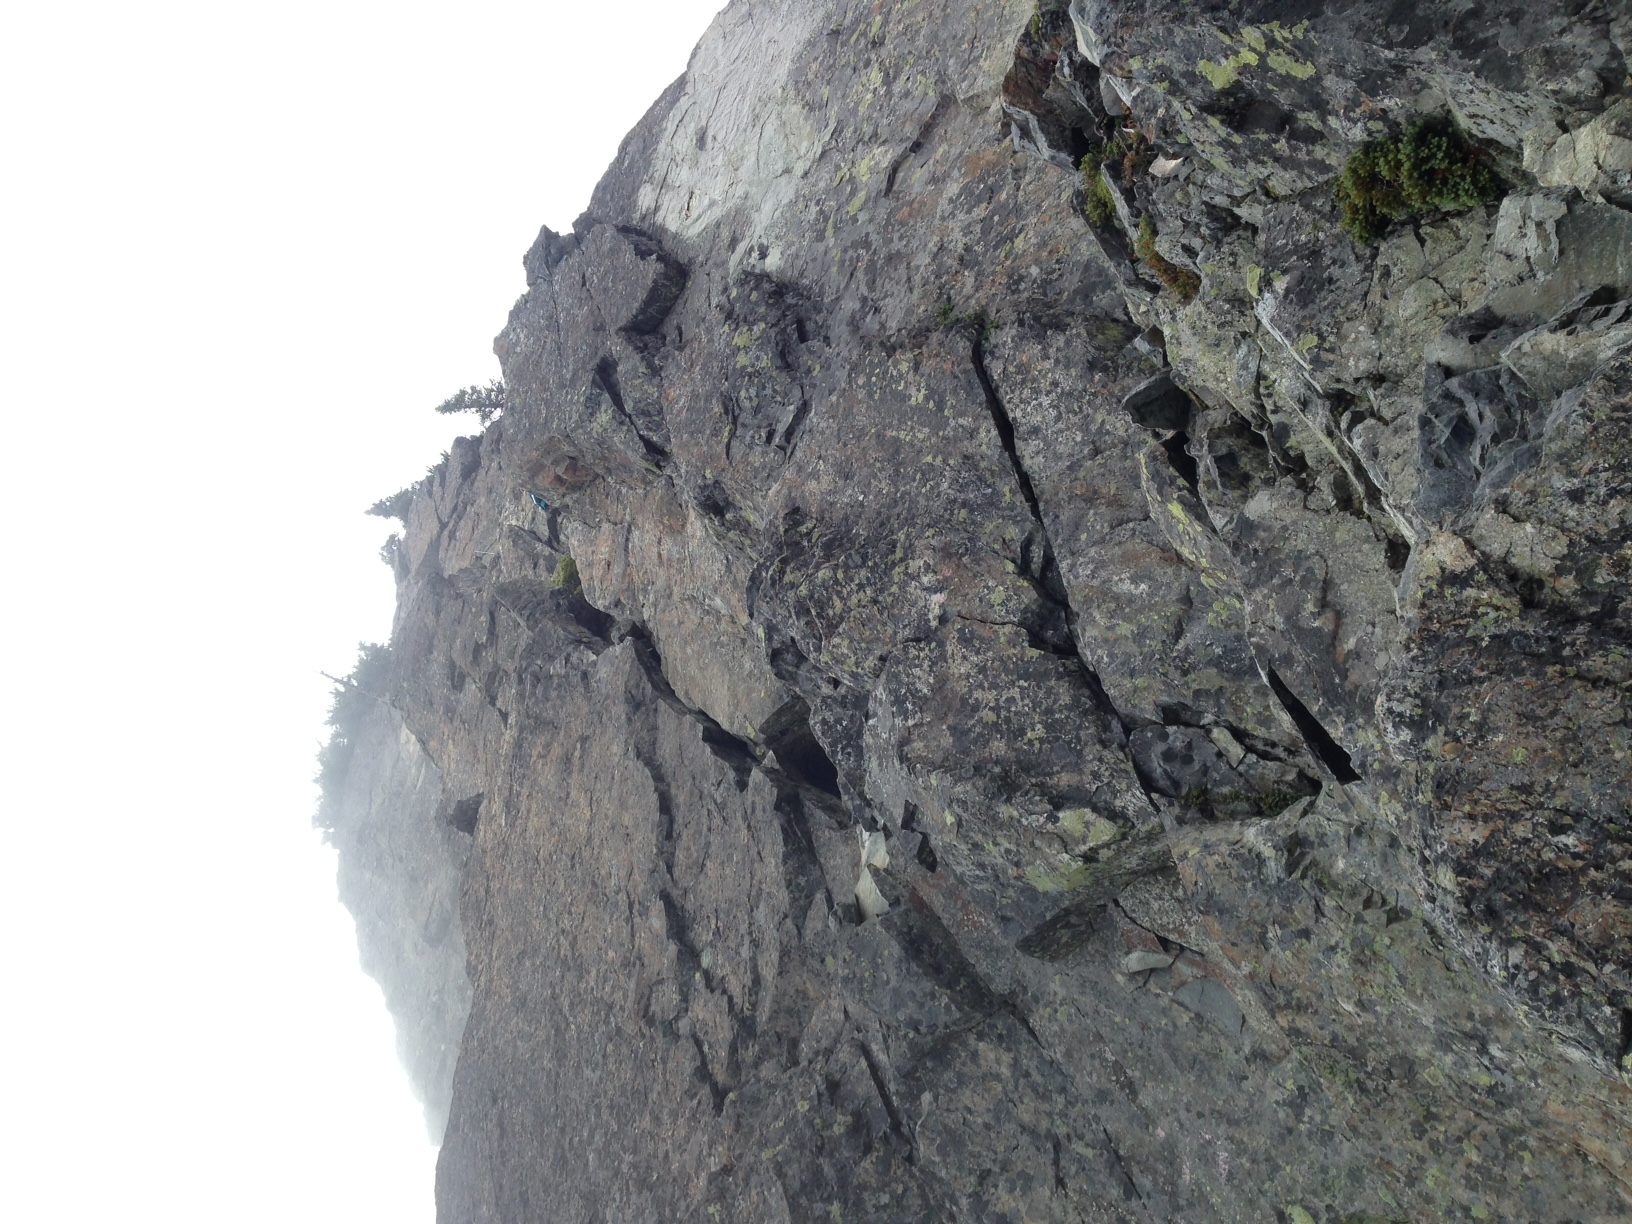 The Tooth/South Face